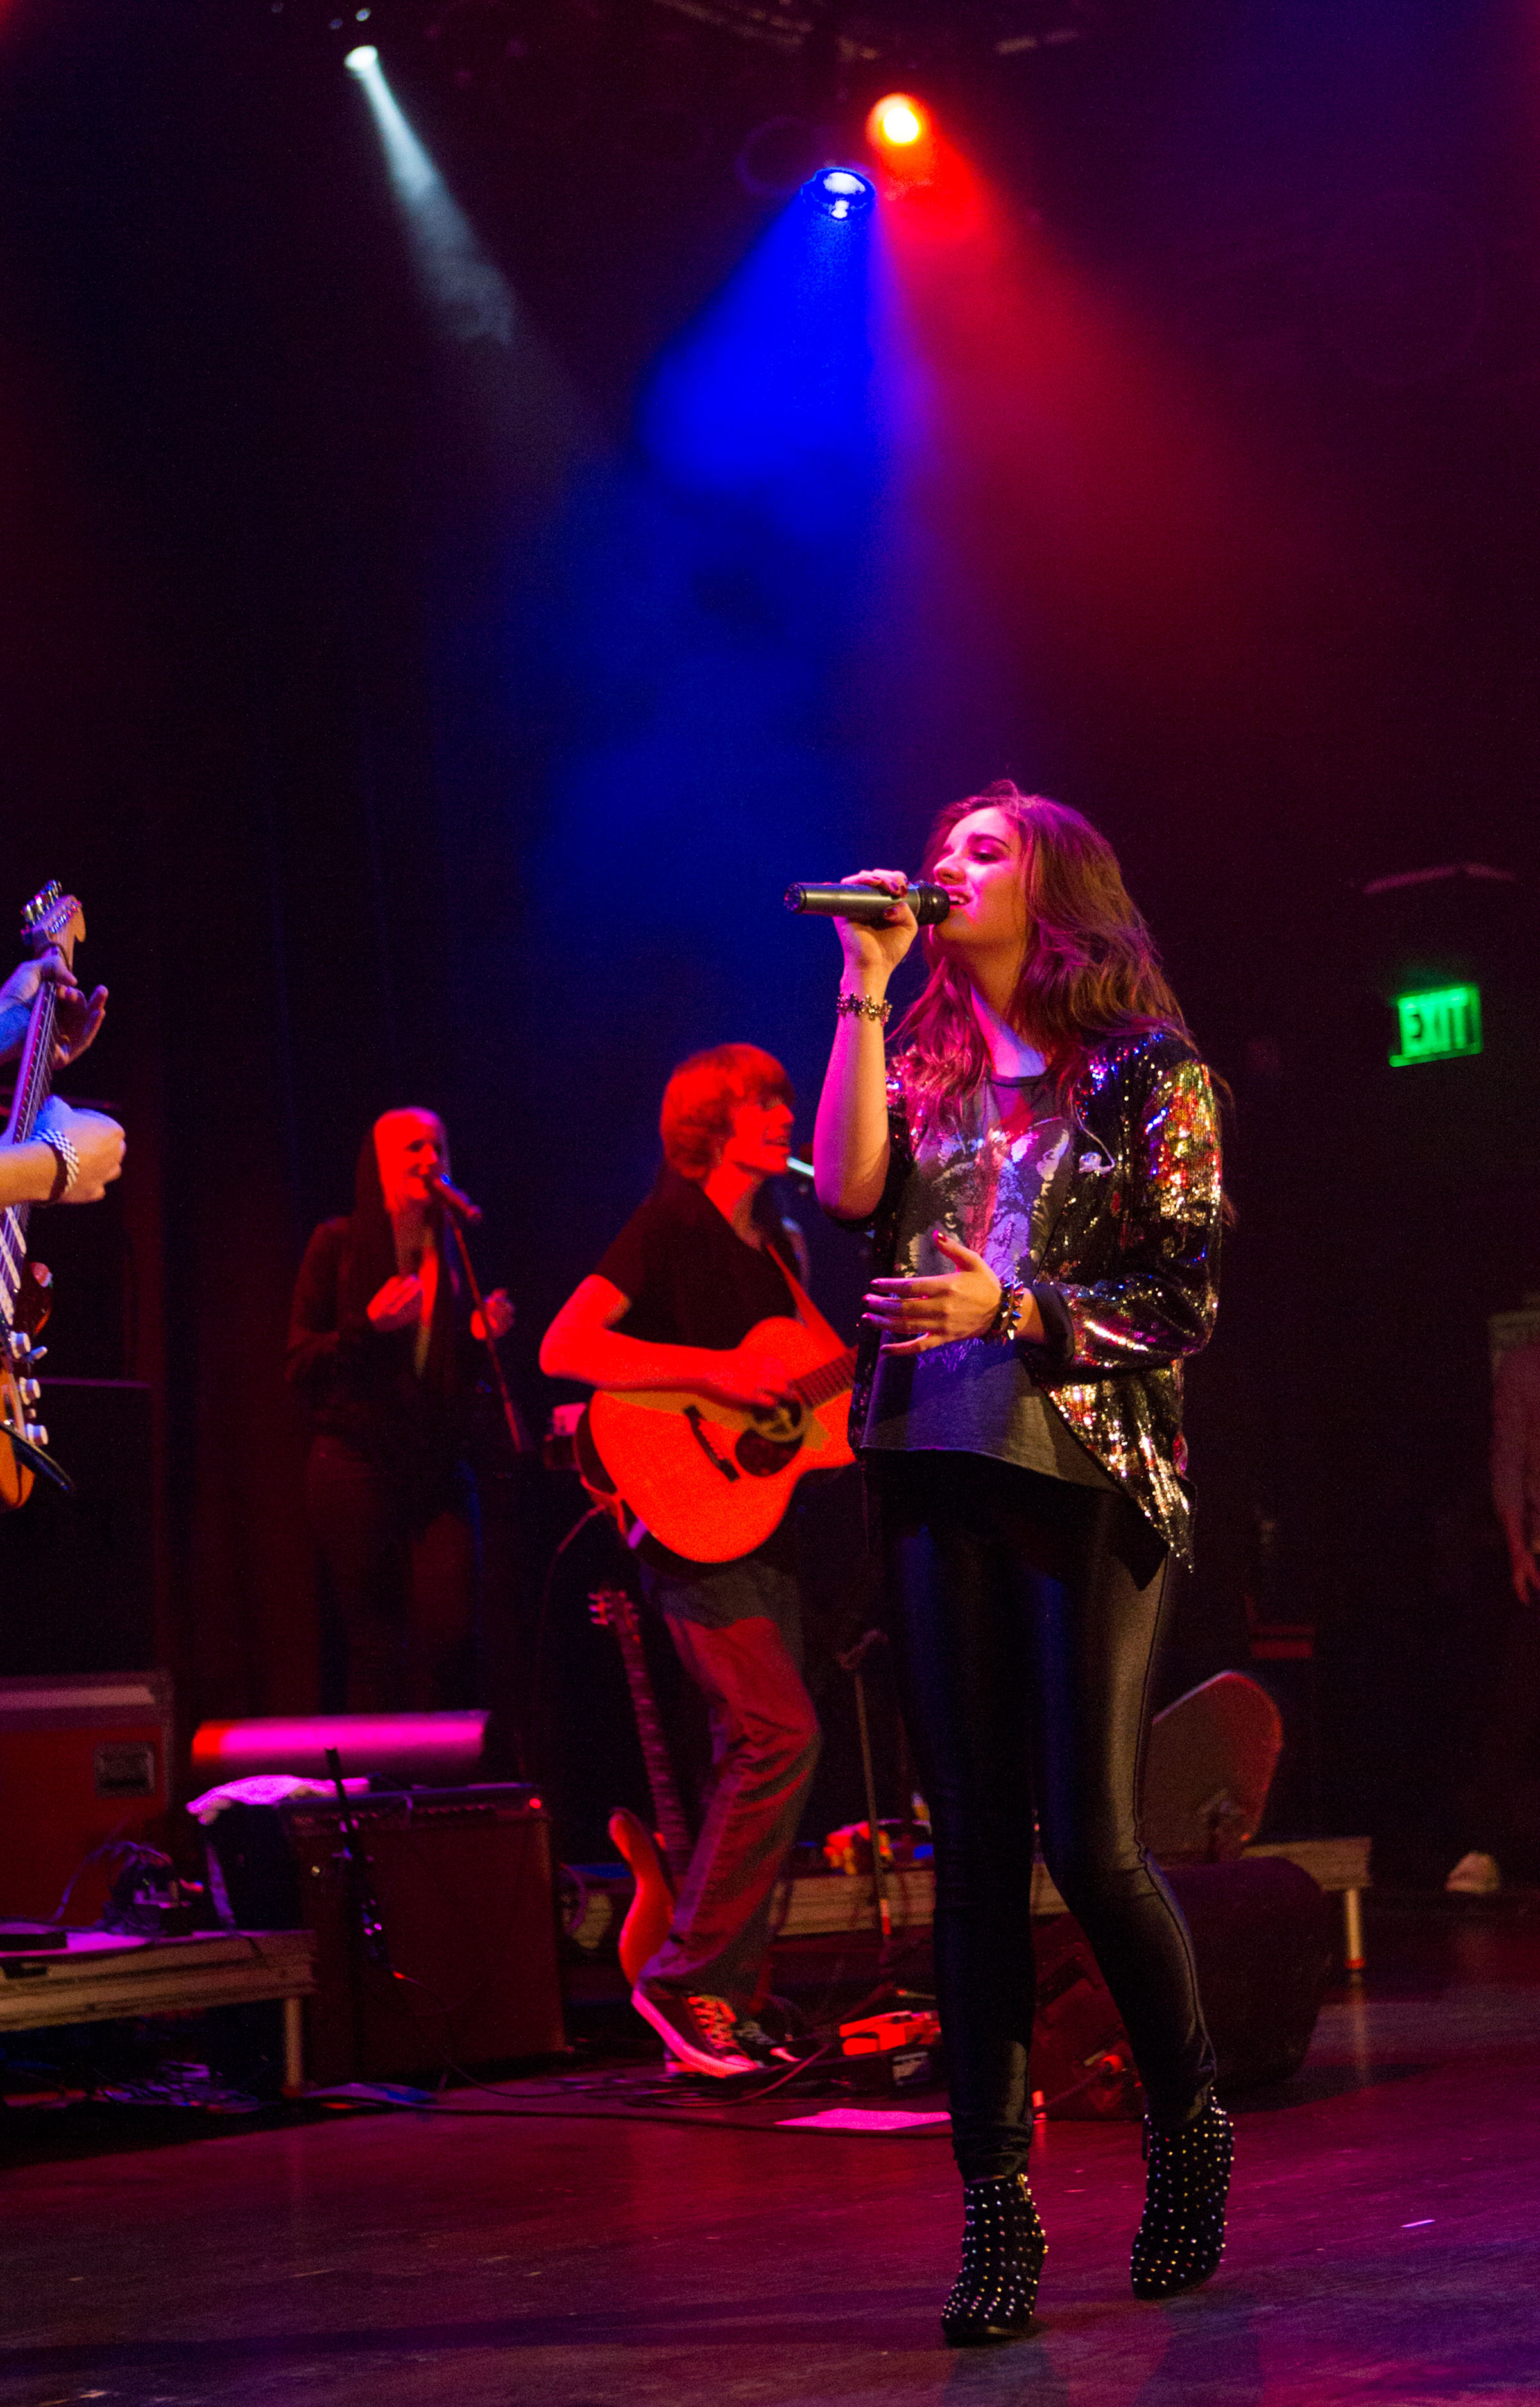 82168_Preppie_Rebecca_Black_performing_at_The_House_Of_Blues_in_Anaheim_26_122_783lo.JPG